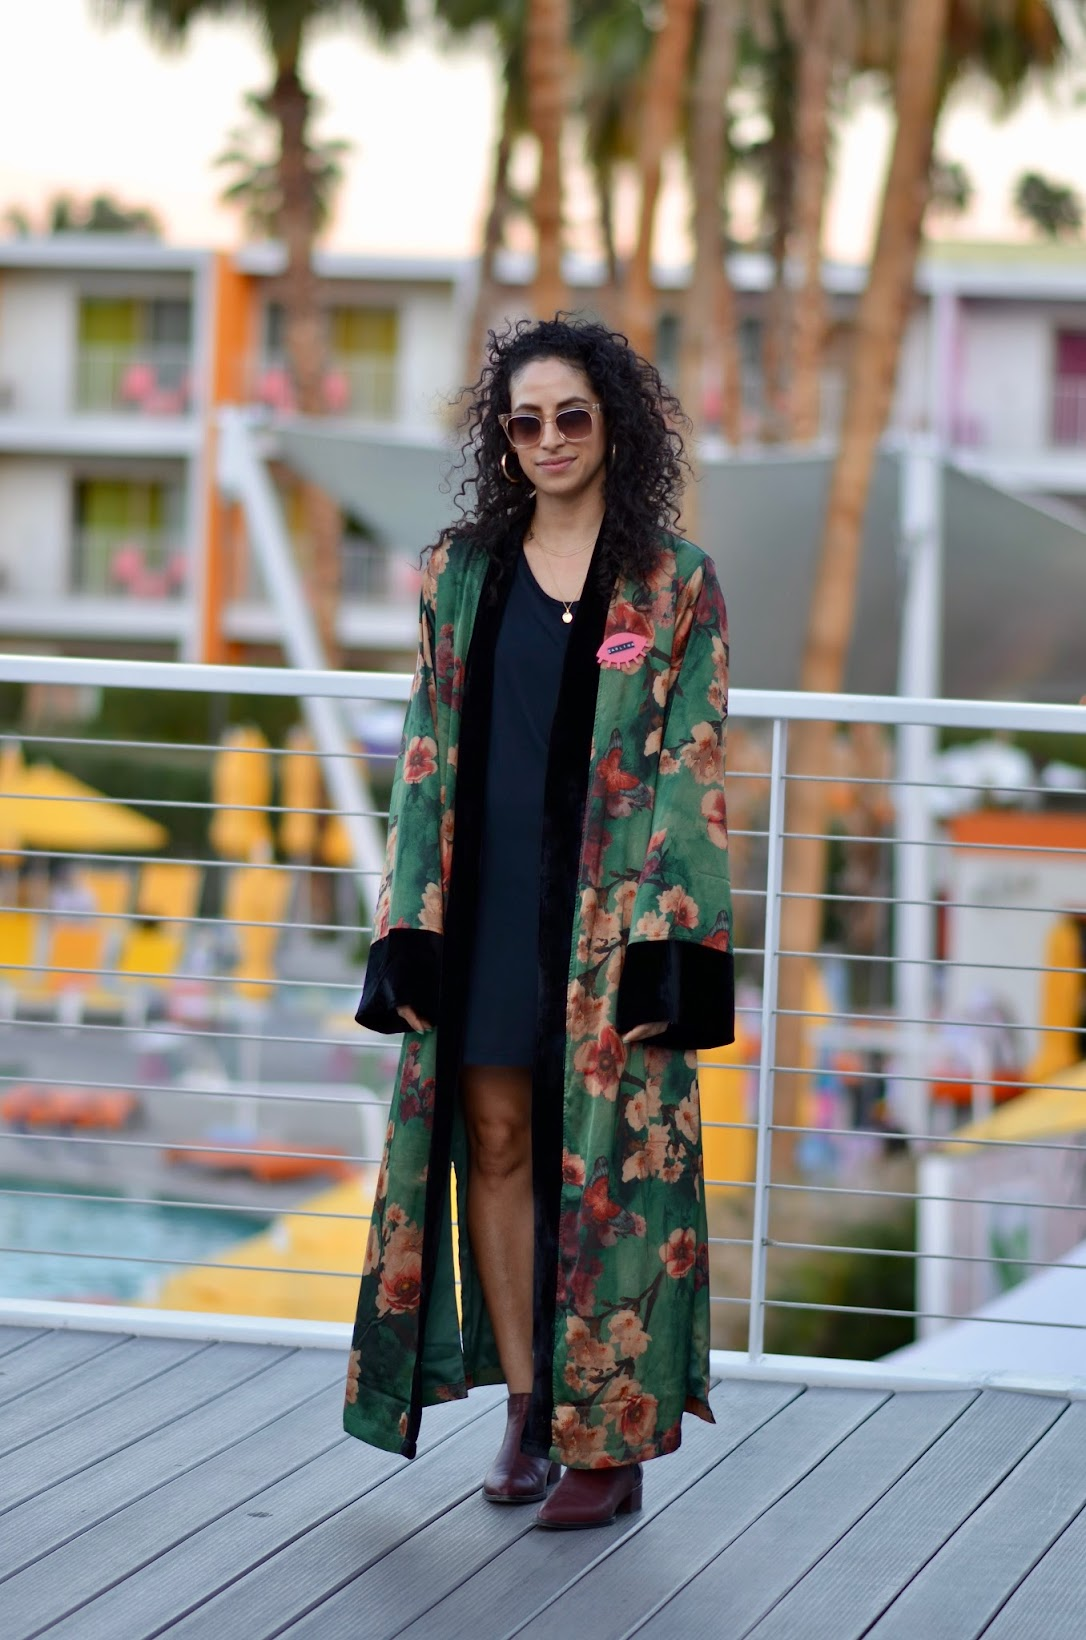 Zara maxi floral dress, Alt Summit conference in Palm Springs, Palm Springs, Arno chianti booties, The Saguaro hotel, what to wear in palm springs